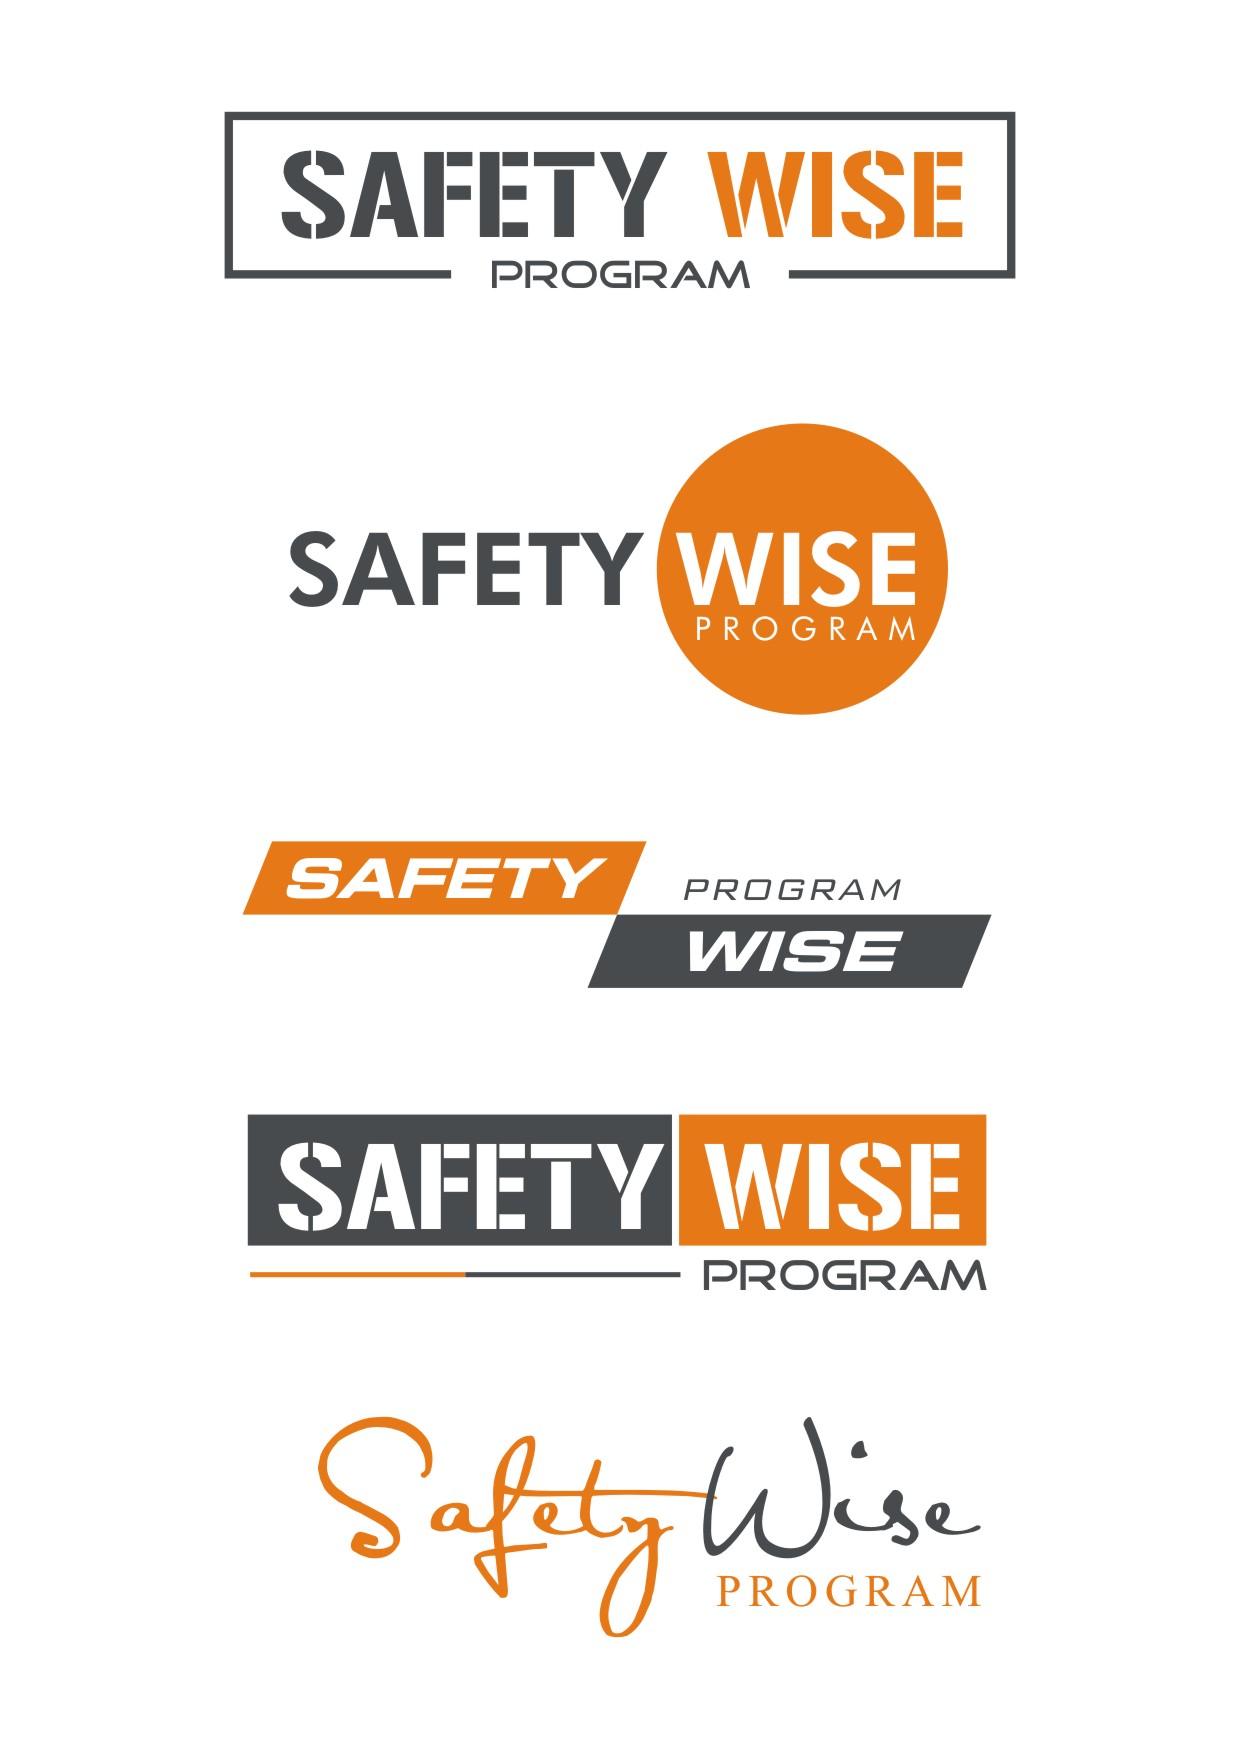 Logo Design by Spider Graphics - Entry No. 210 in the Logo Design Contest New Logo Design for Safety Wise Program.